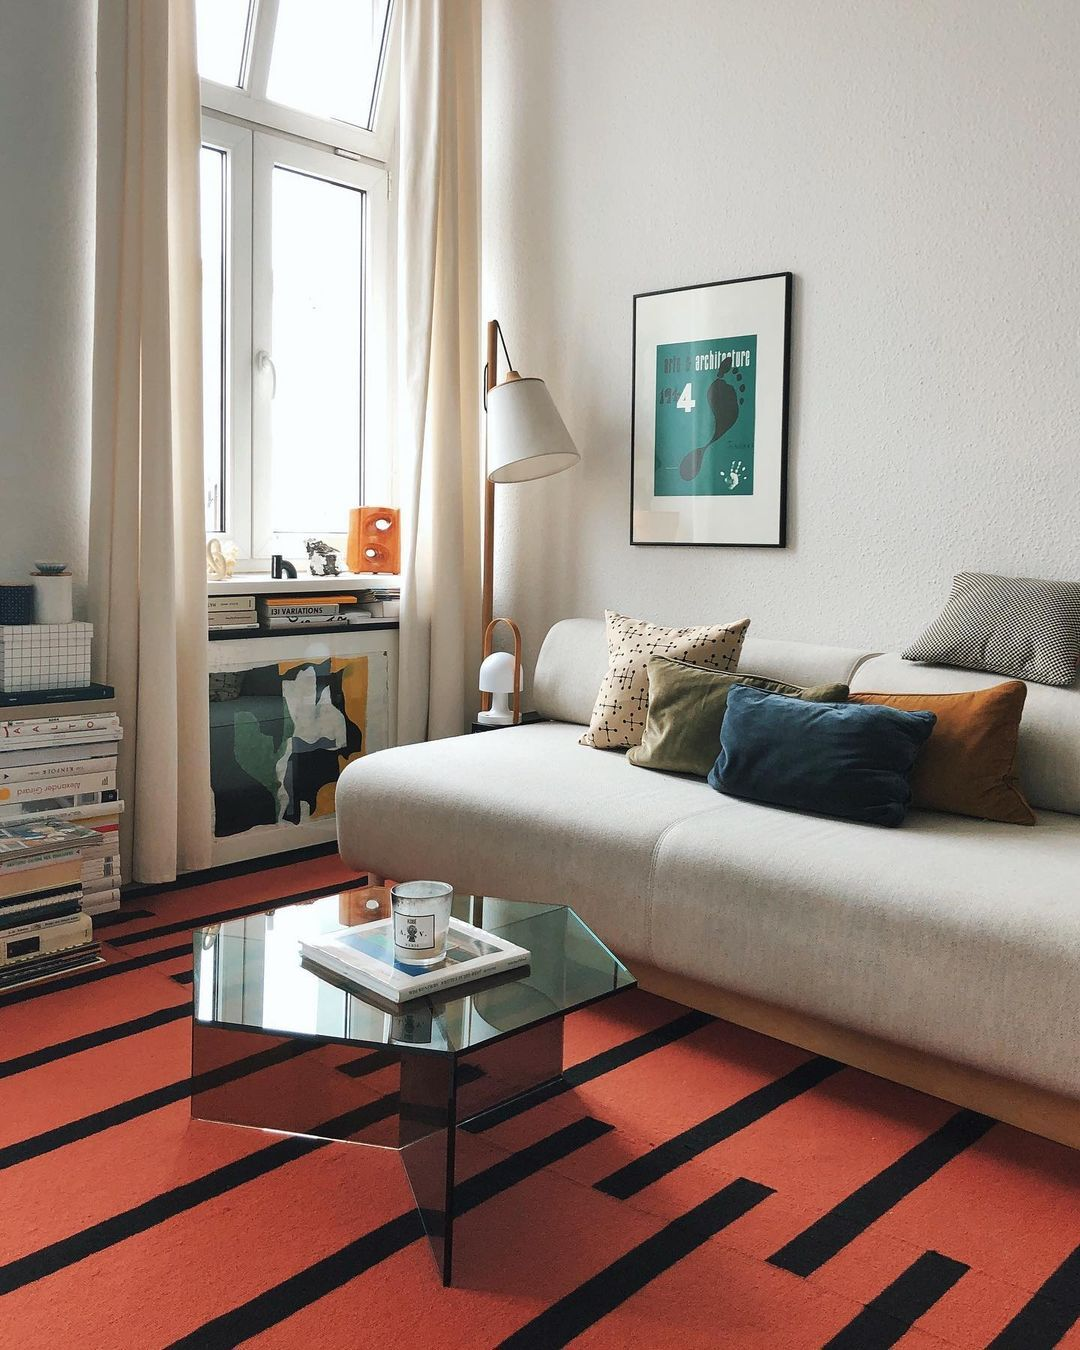 The Tiger rug in Red and Black in a modern and bright apartment.